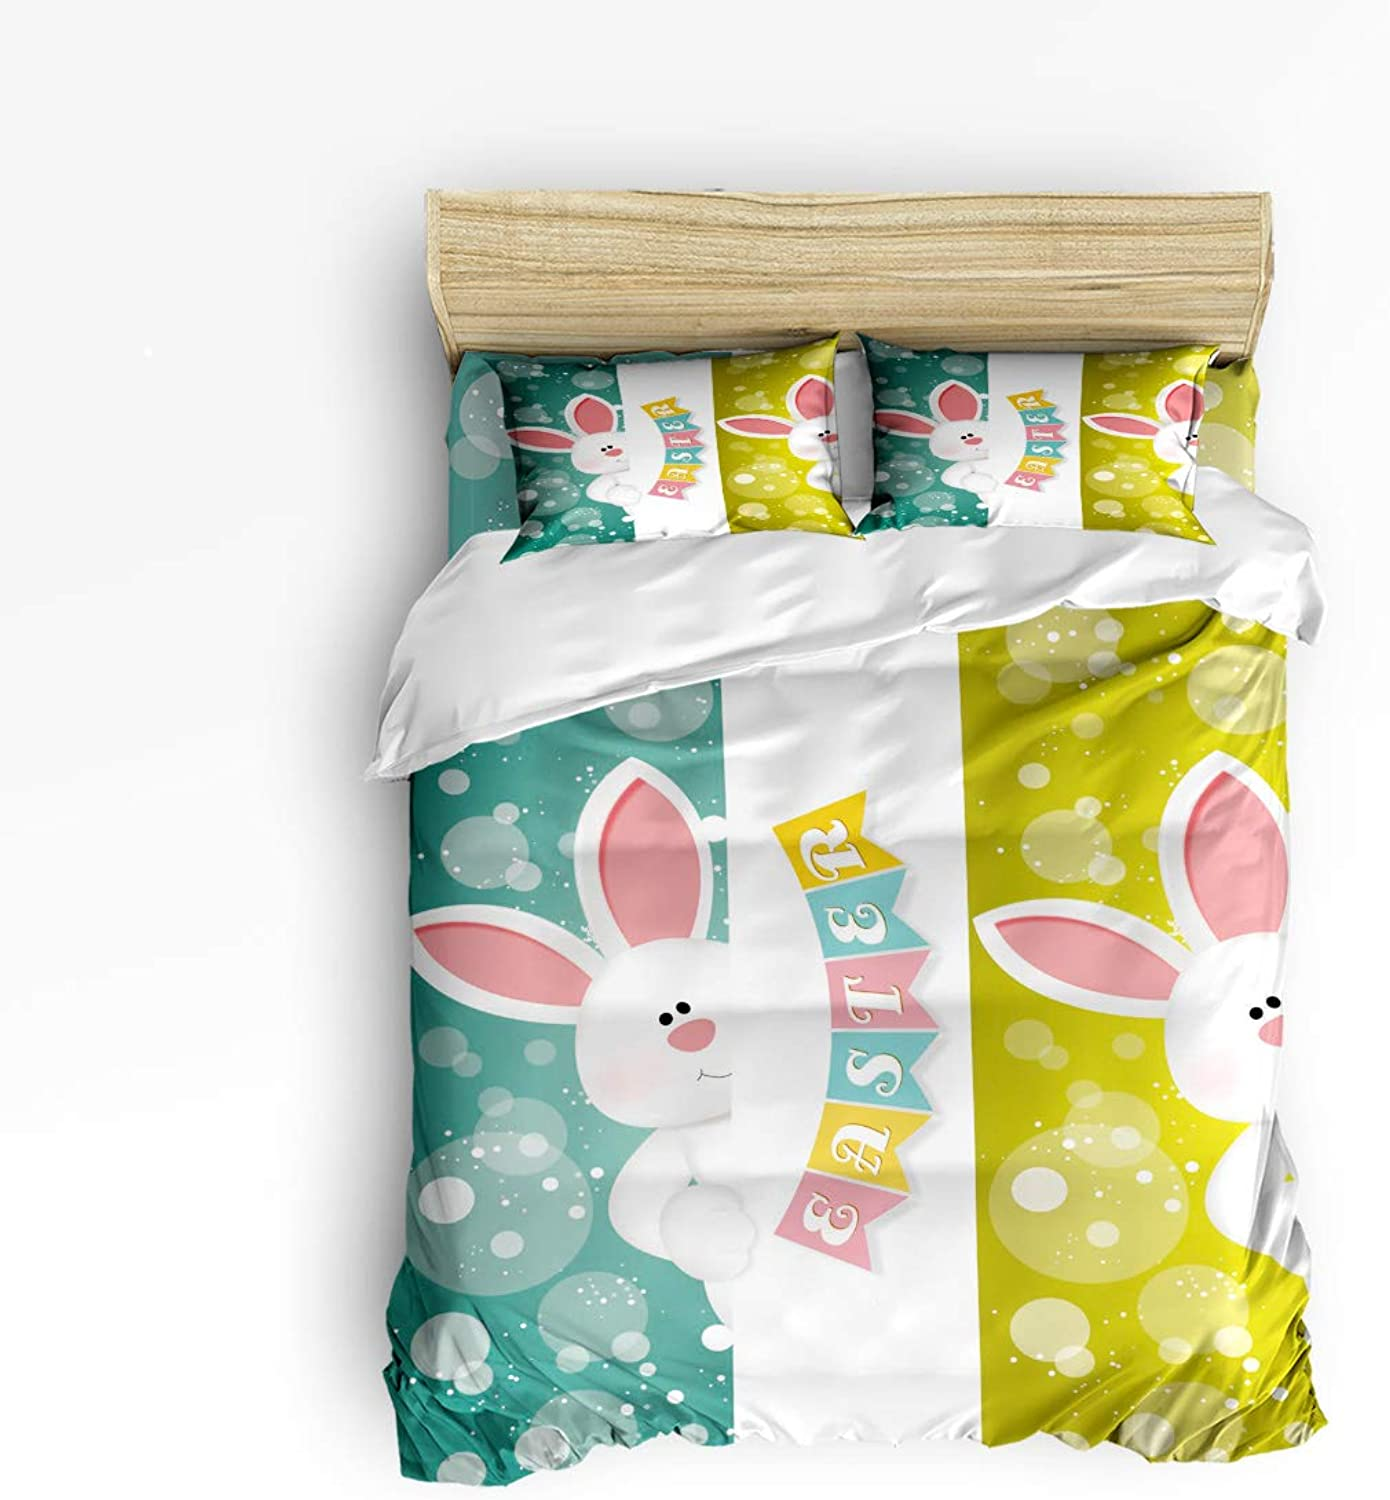 Fandim Fly Bedding Set Queen Size Cartoon Rabbit,Comforter Cover Sets for All Season